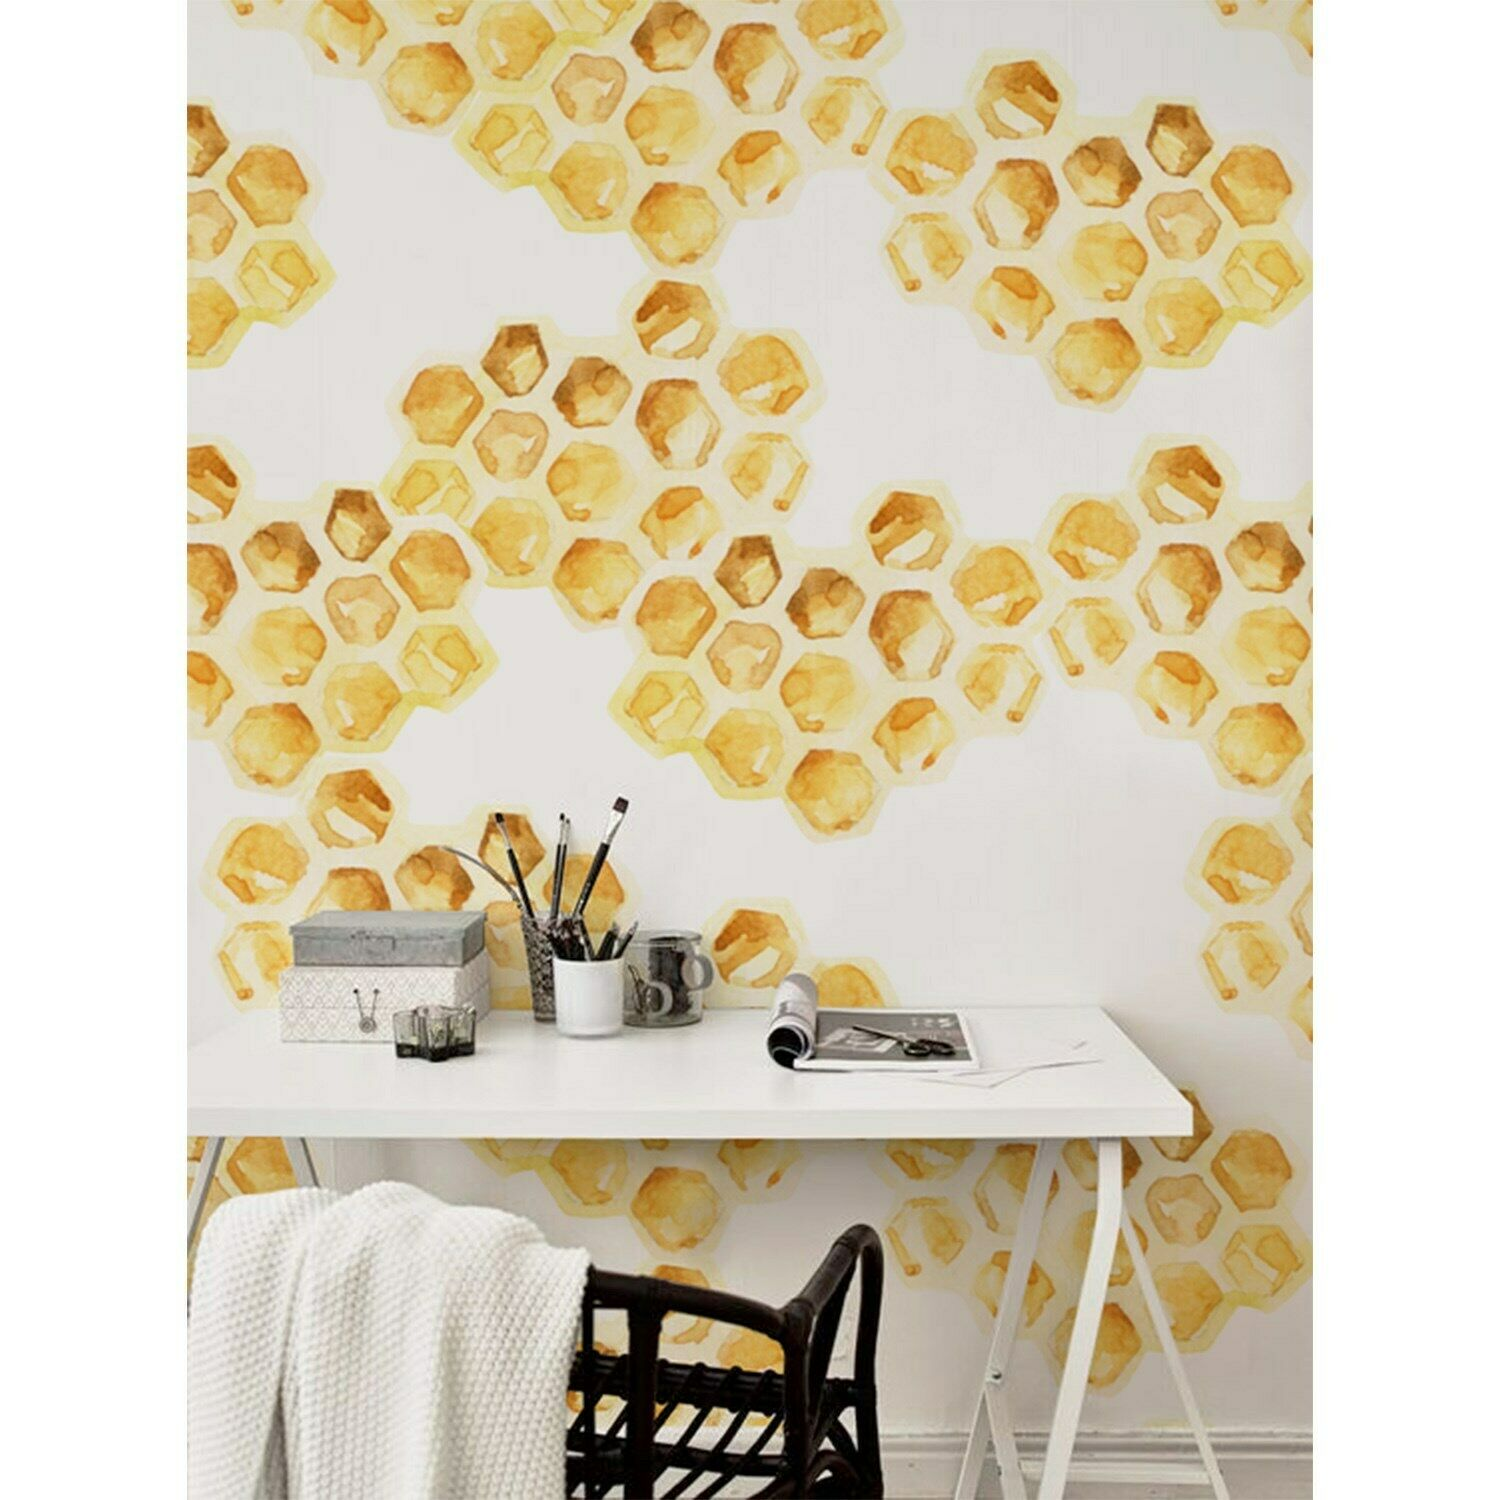 Honeycomb Non-Woven wallpaper Hexagon Pattern Accent wall Traditional Mural